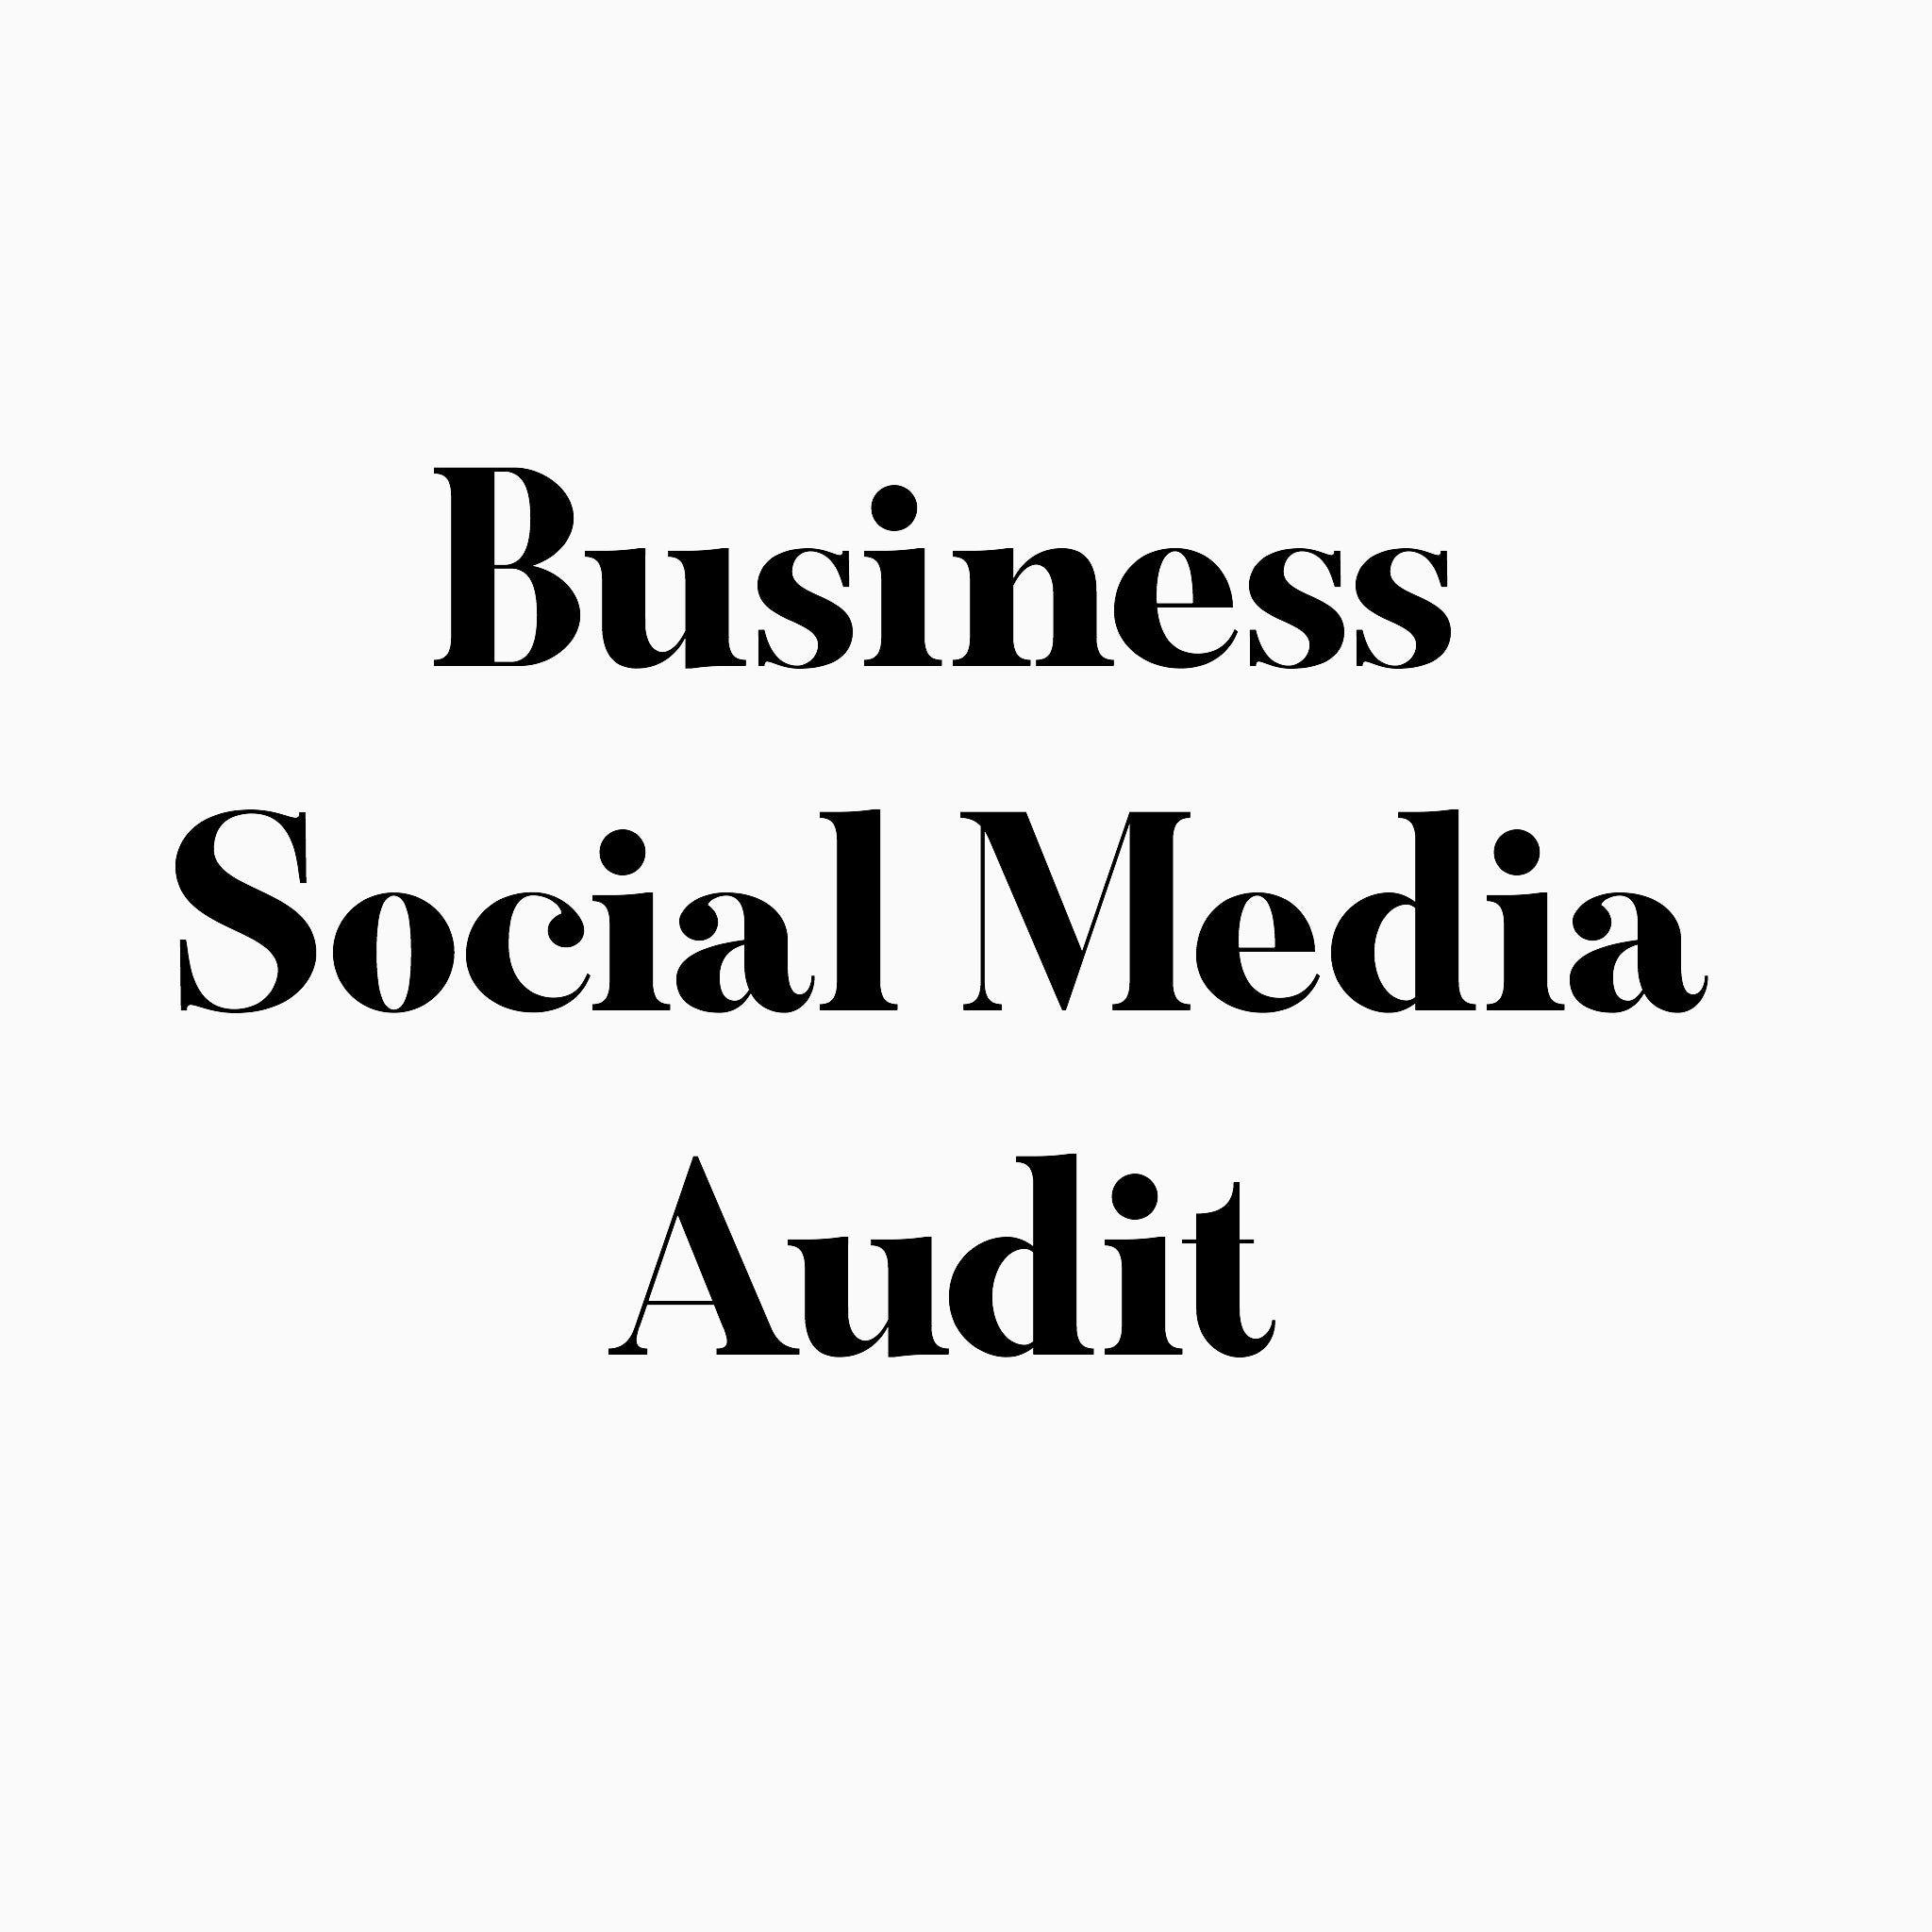 Business Social Media Audit